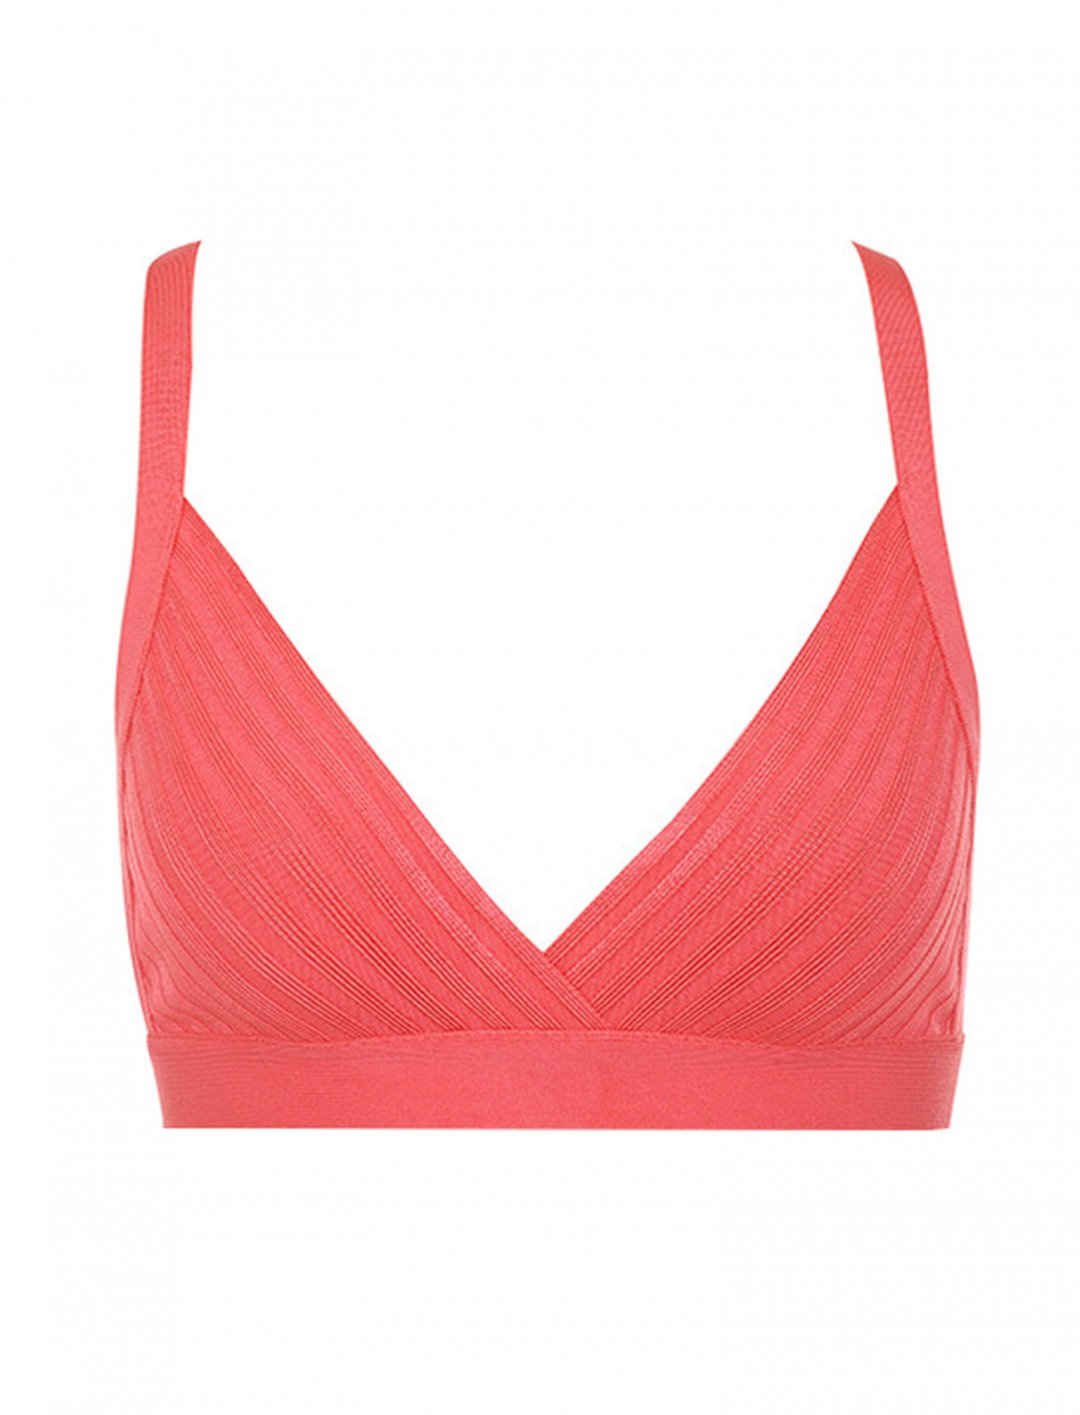 "Coral Bandage Bralet Top {""id"":5,""product_section_id"":1,""name"":""Clothing"",""order"":5} House Of CB"